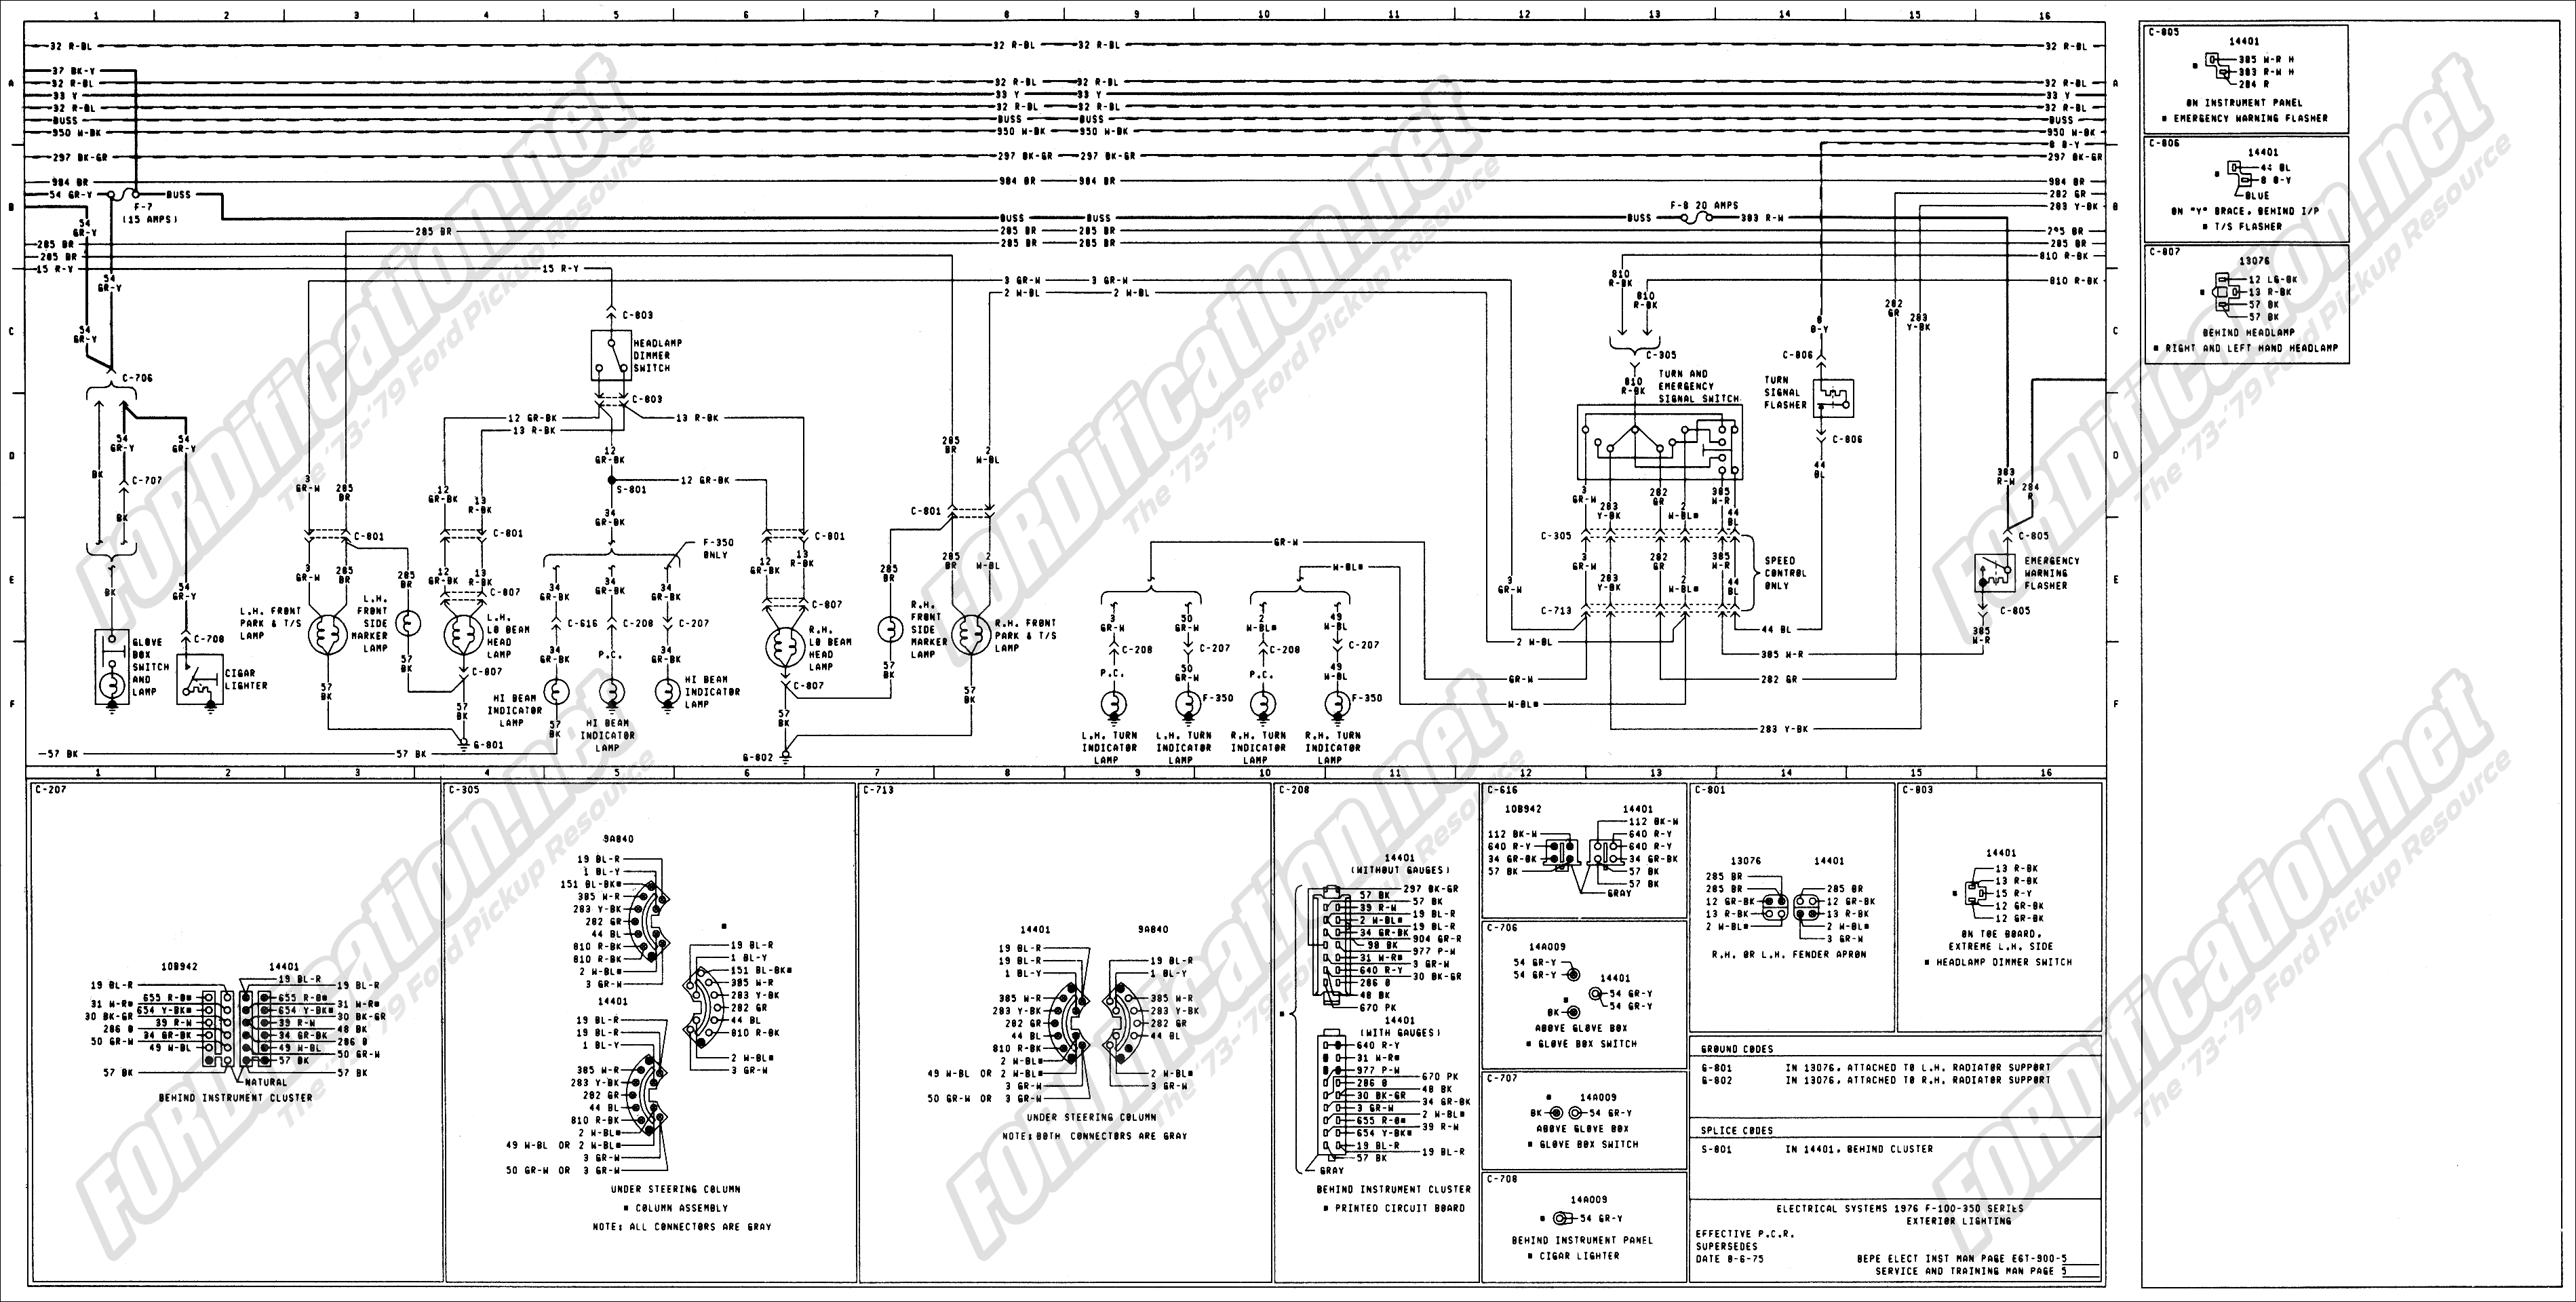 wiring_76master_5of9 1973 1979 ford truck wiring diagrams & schematics fordification net 1976 ford f100 wiring diagram at bayanpartner.co